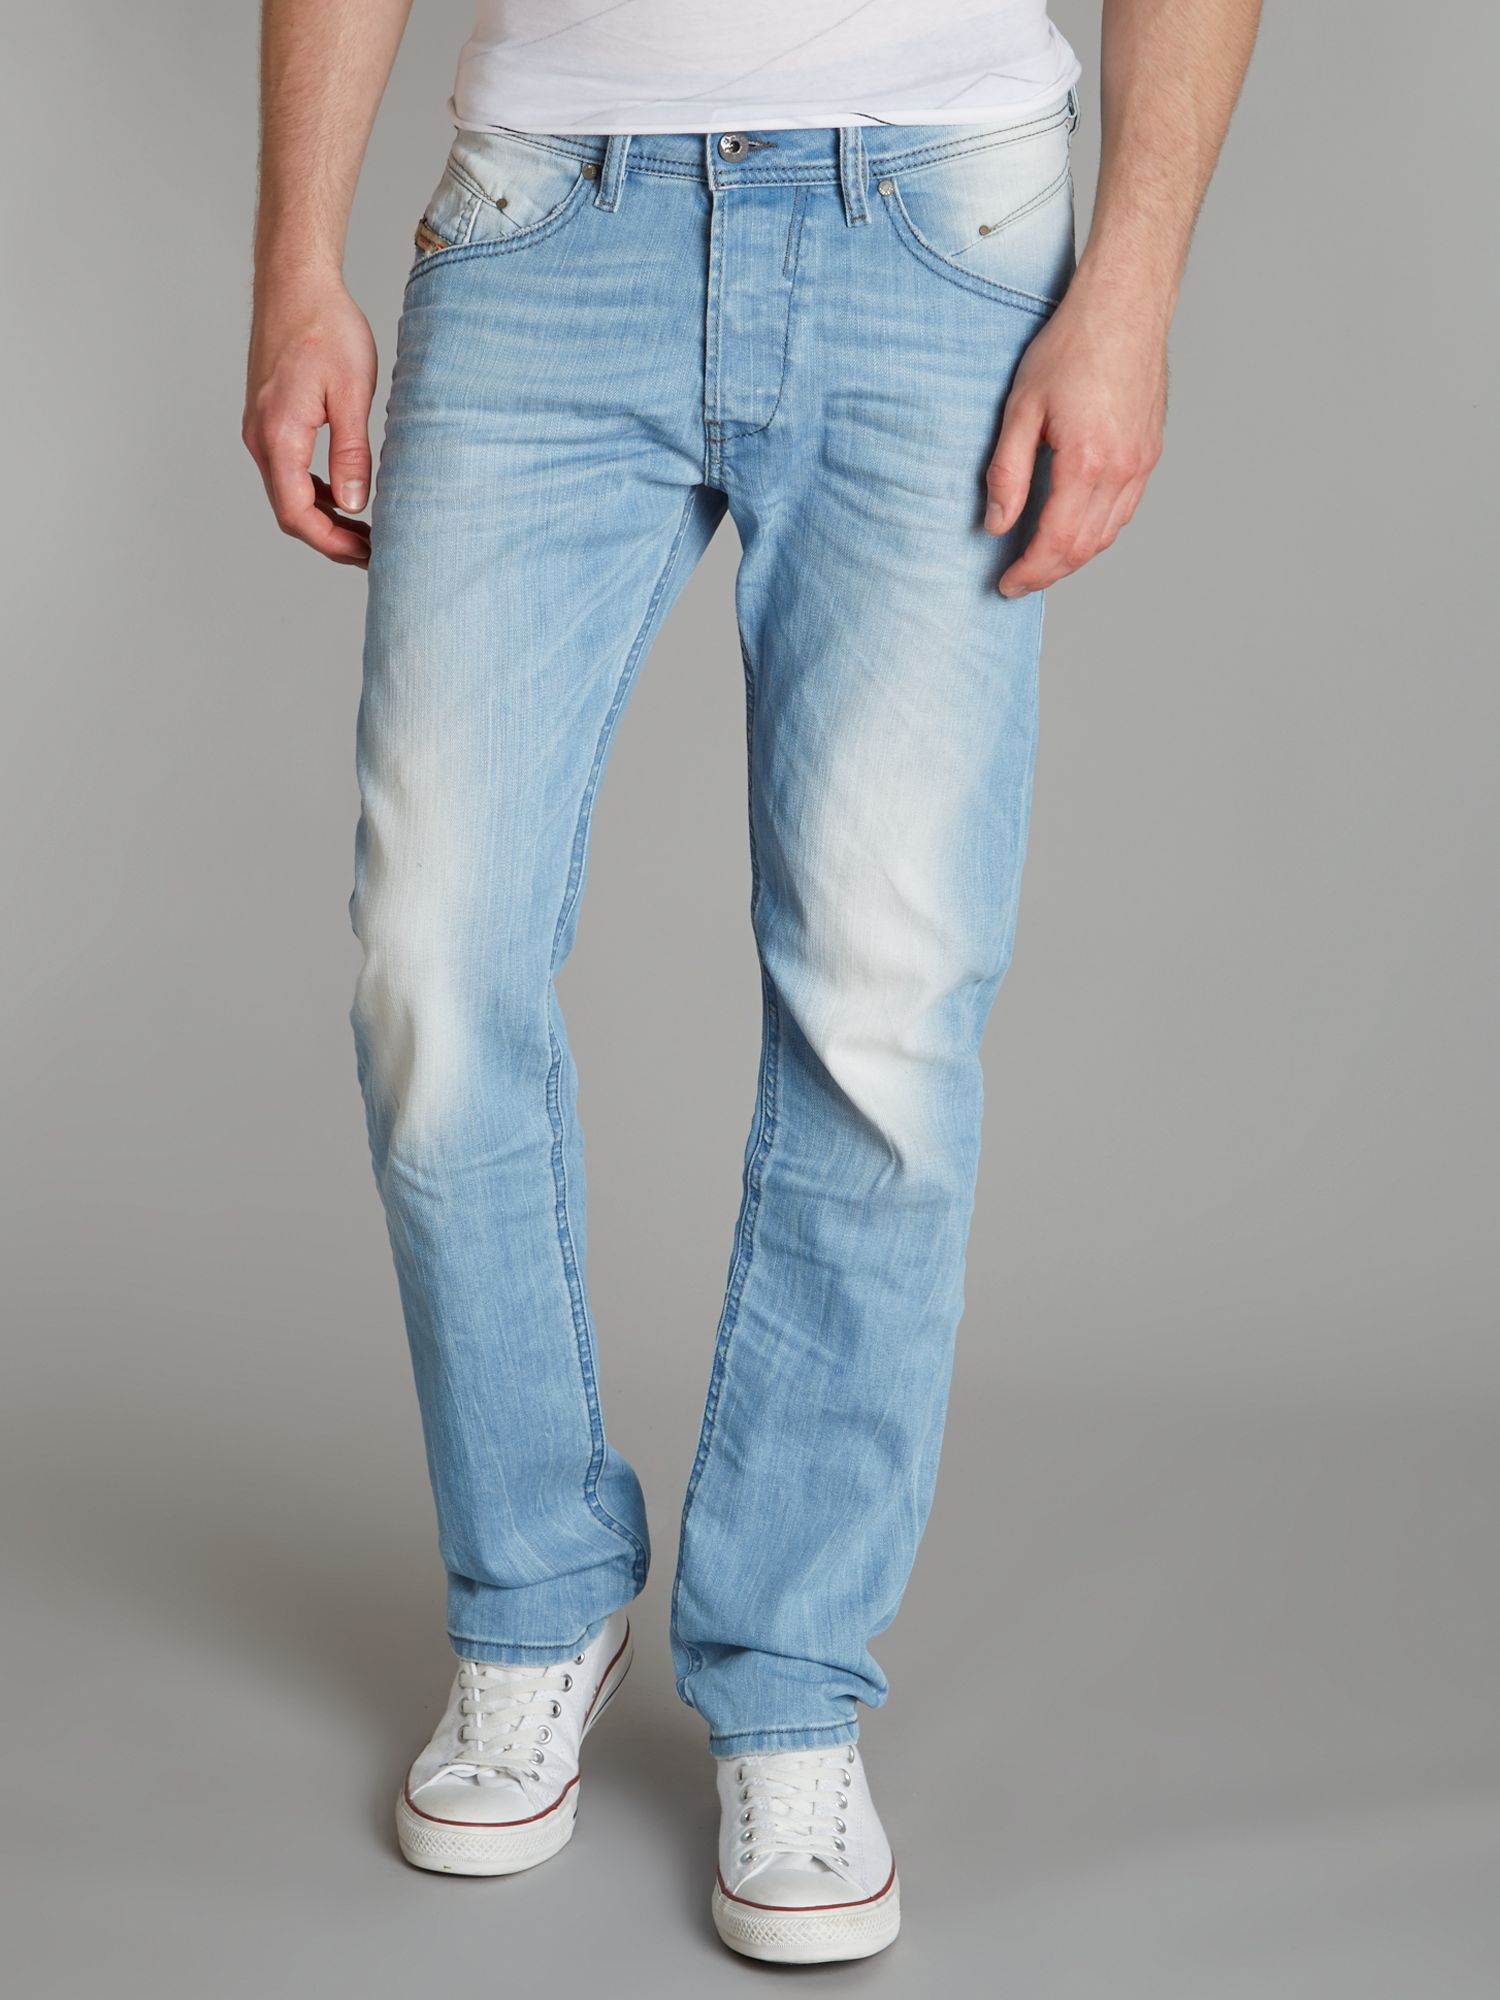 Belther 814D slim fit jeans